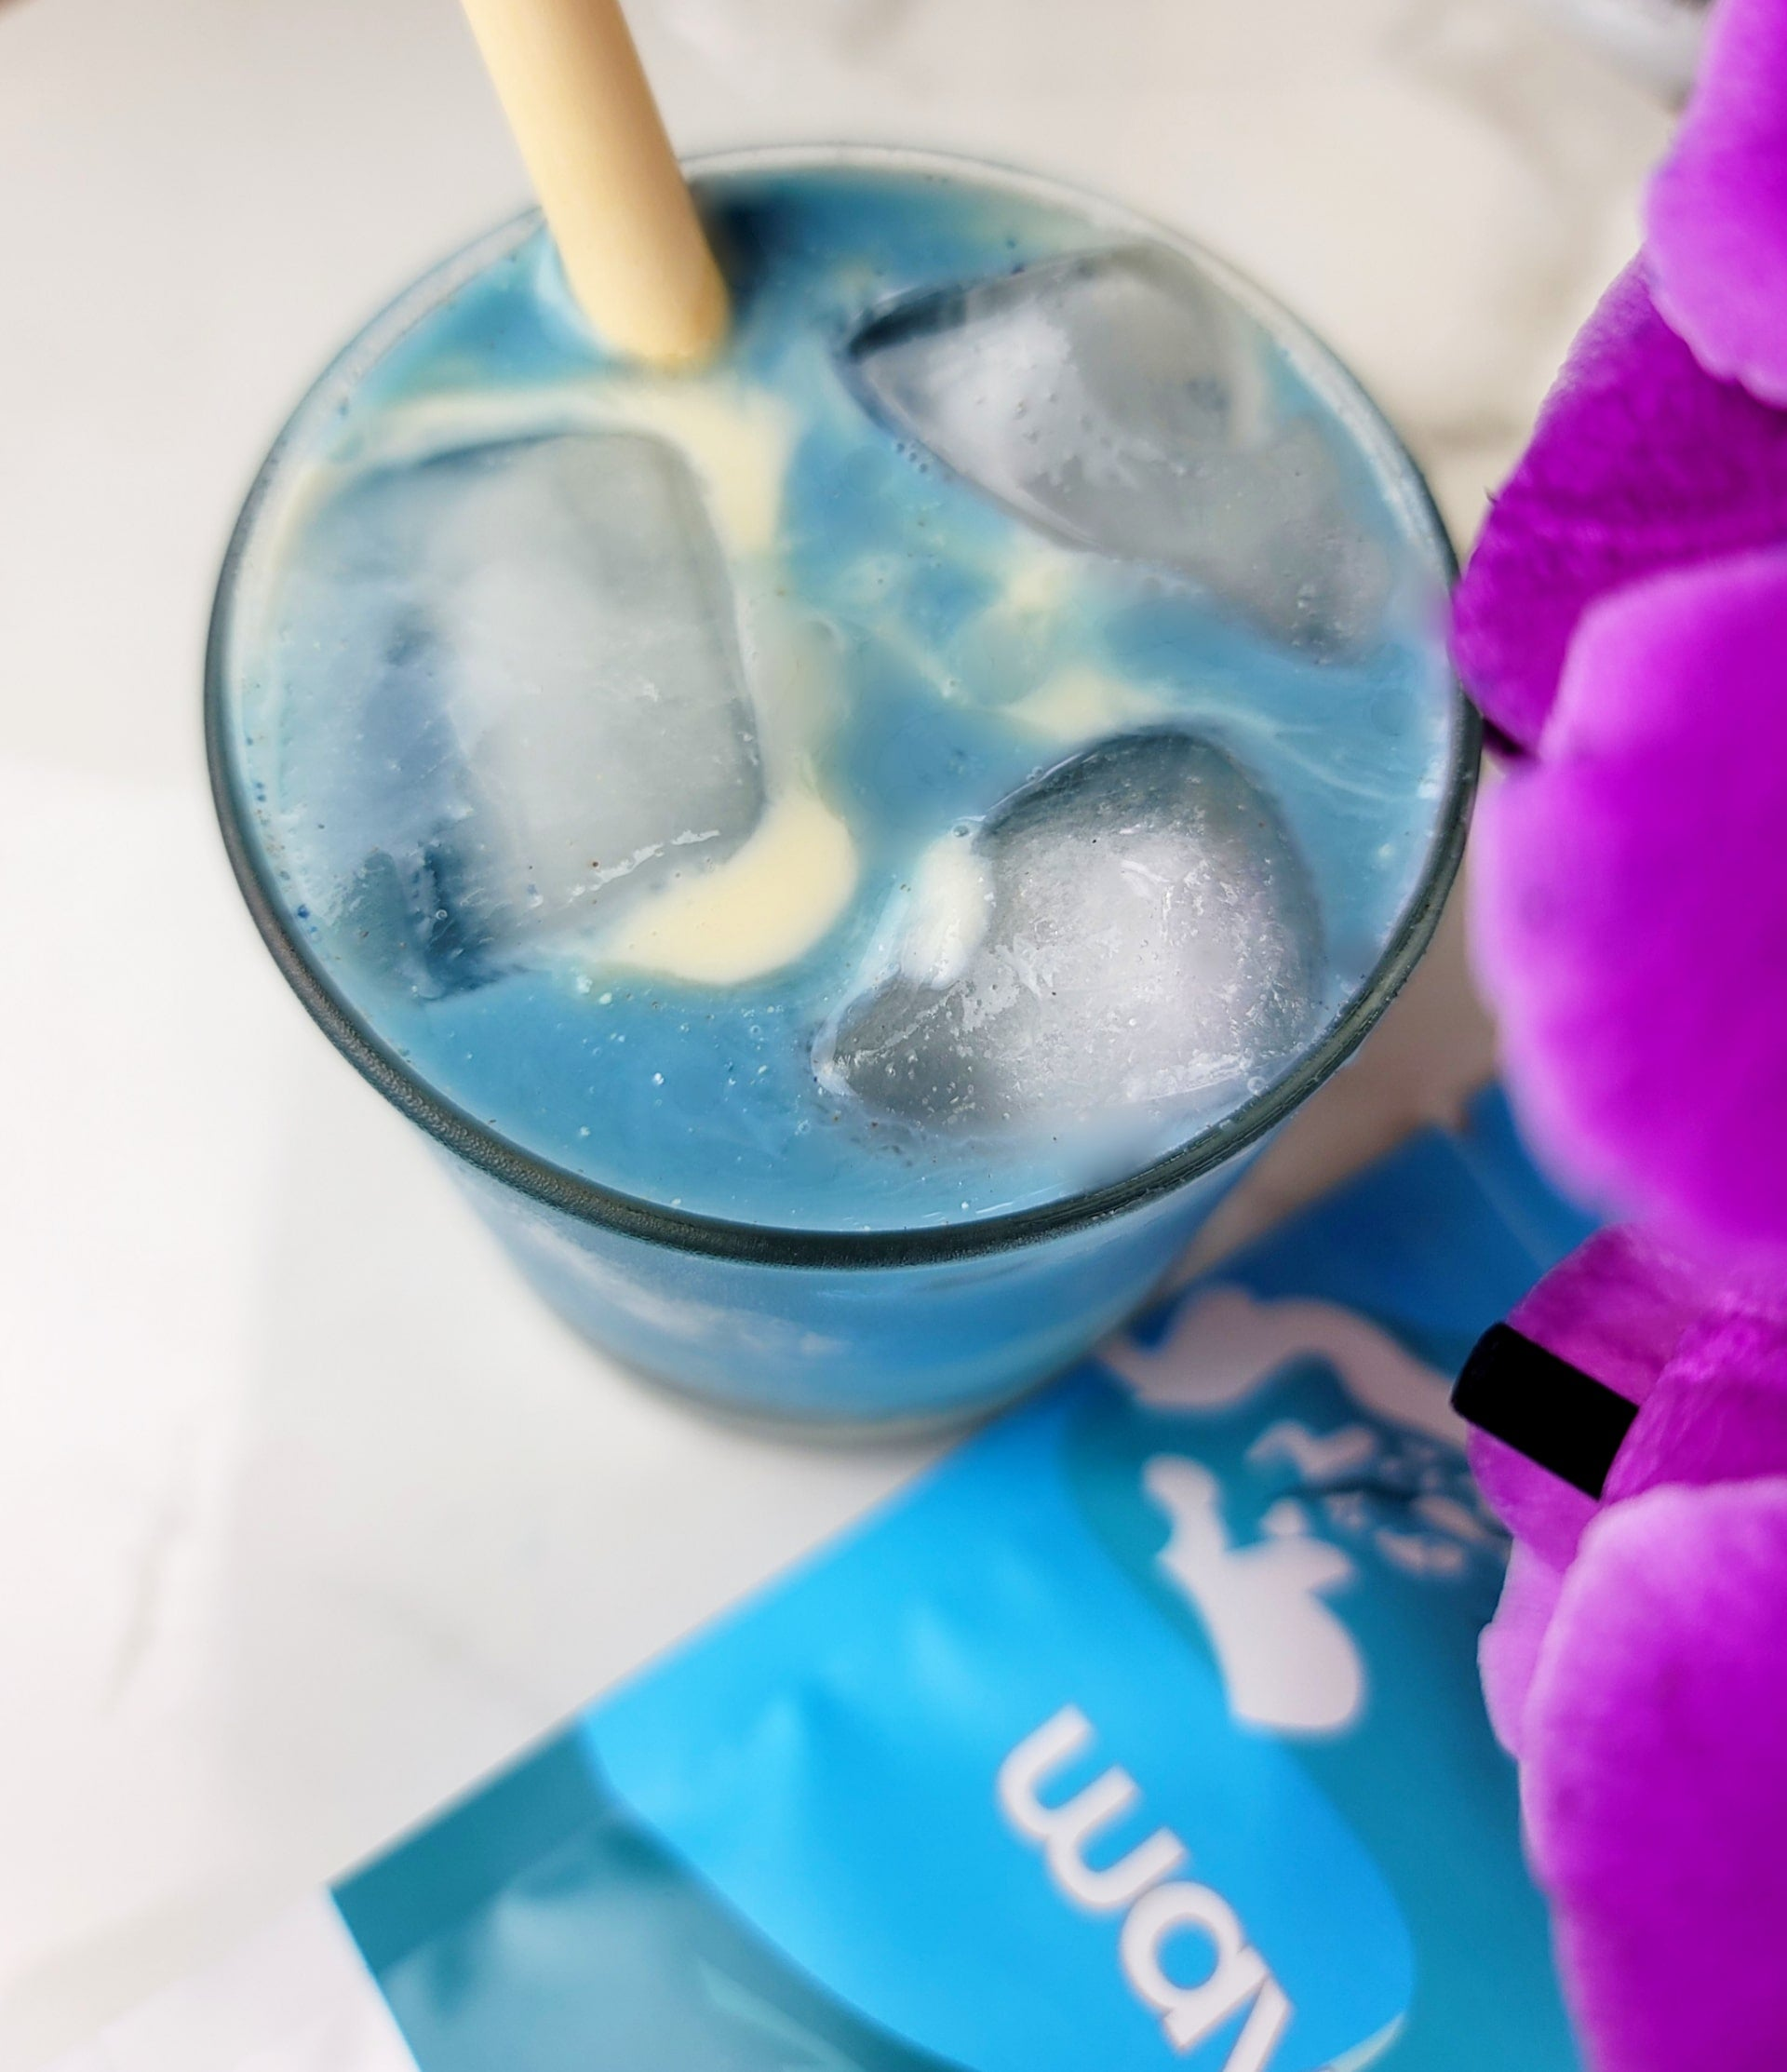 Our wave blend has 6 powerful antioxidant and vitamin B rich foods for a refreshing way to enhance energy levels, improve immunity and digestion.